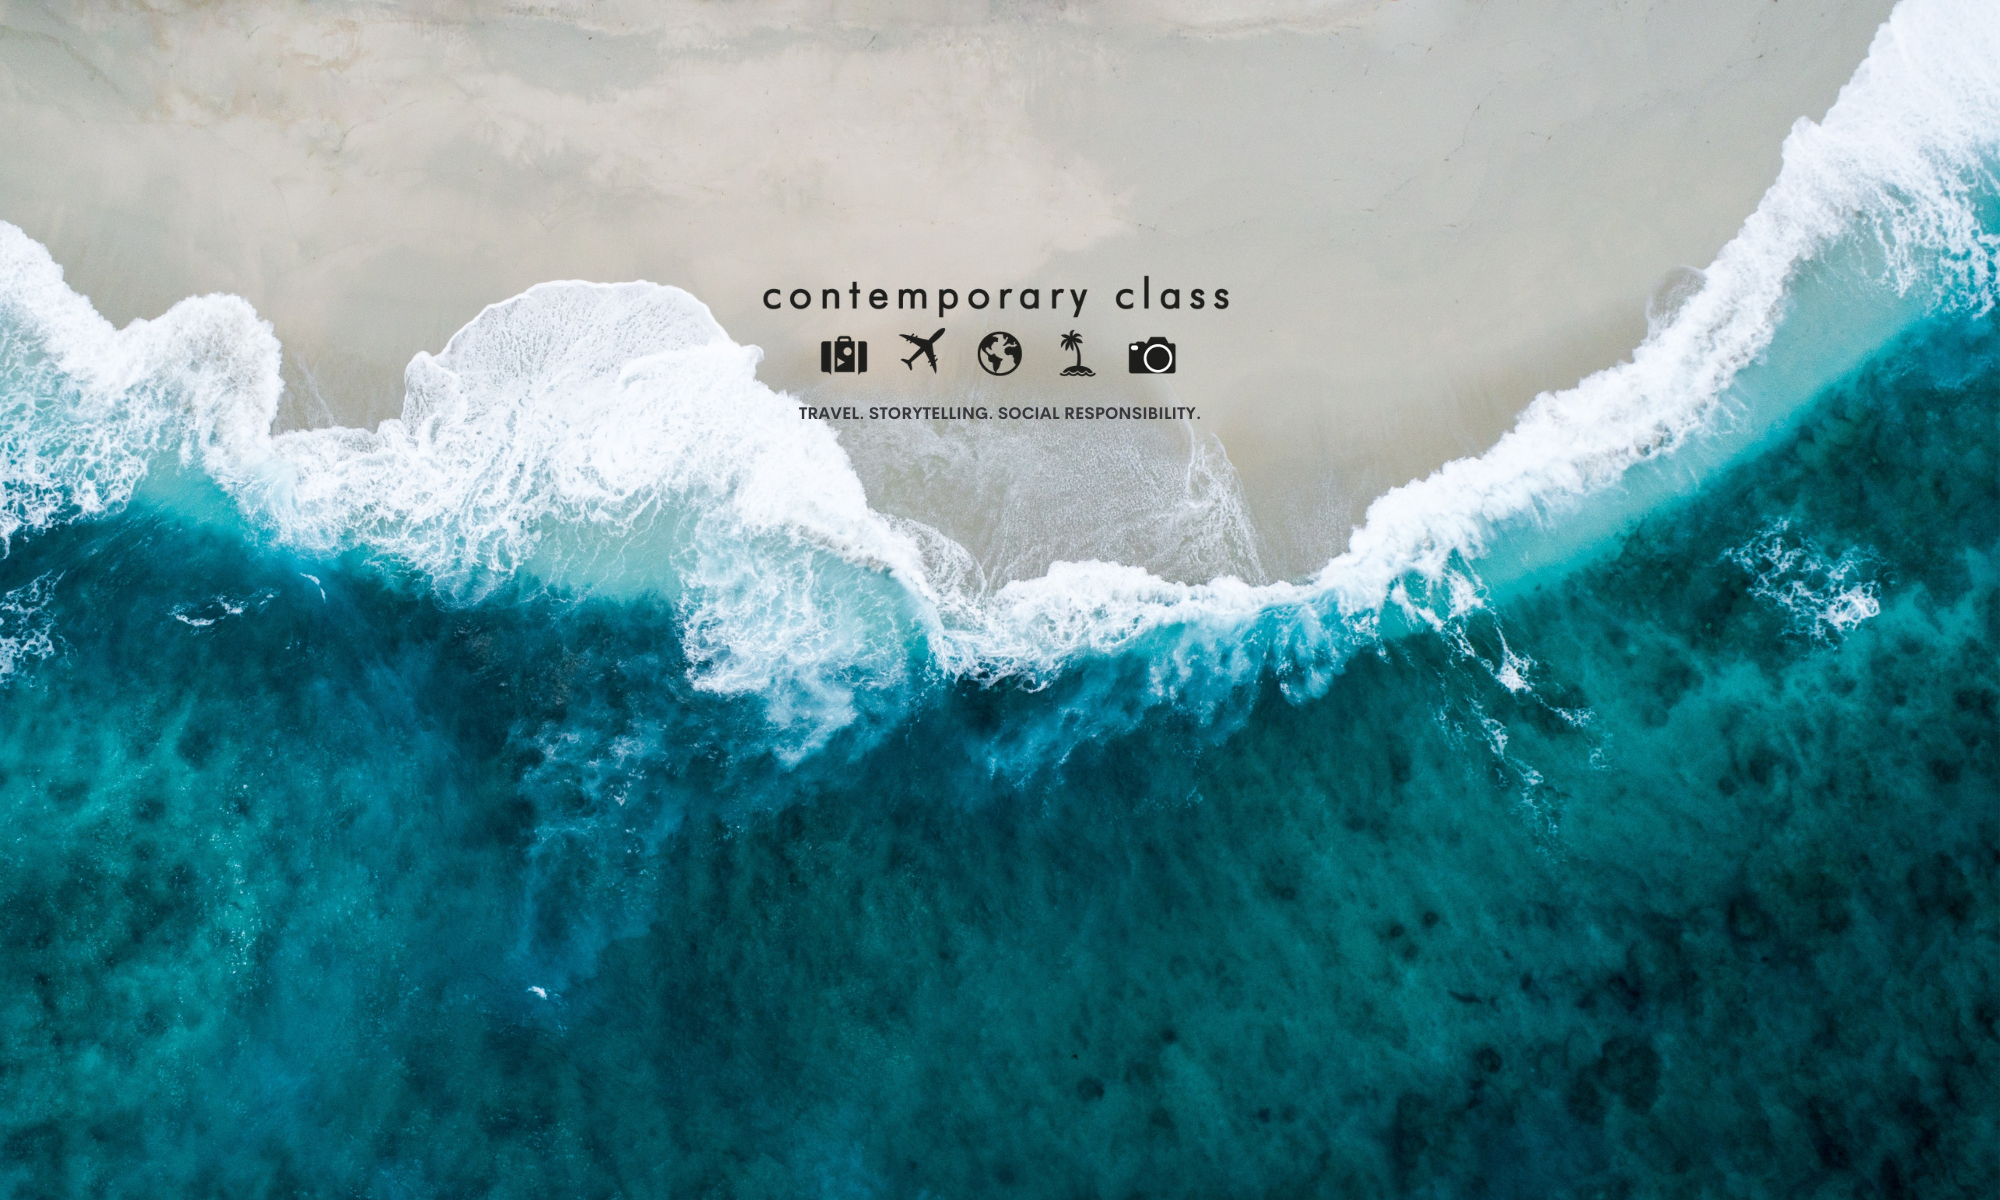 Contemporary Class Media